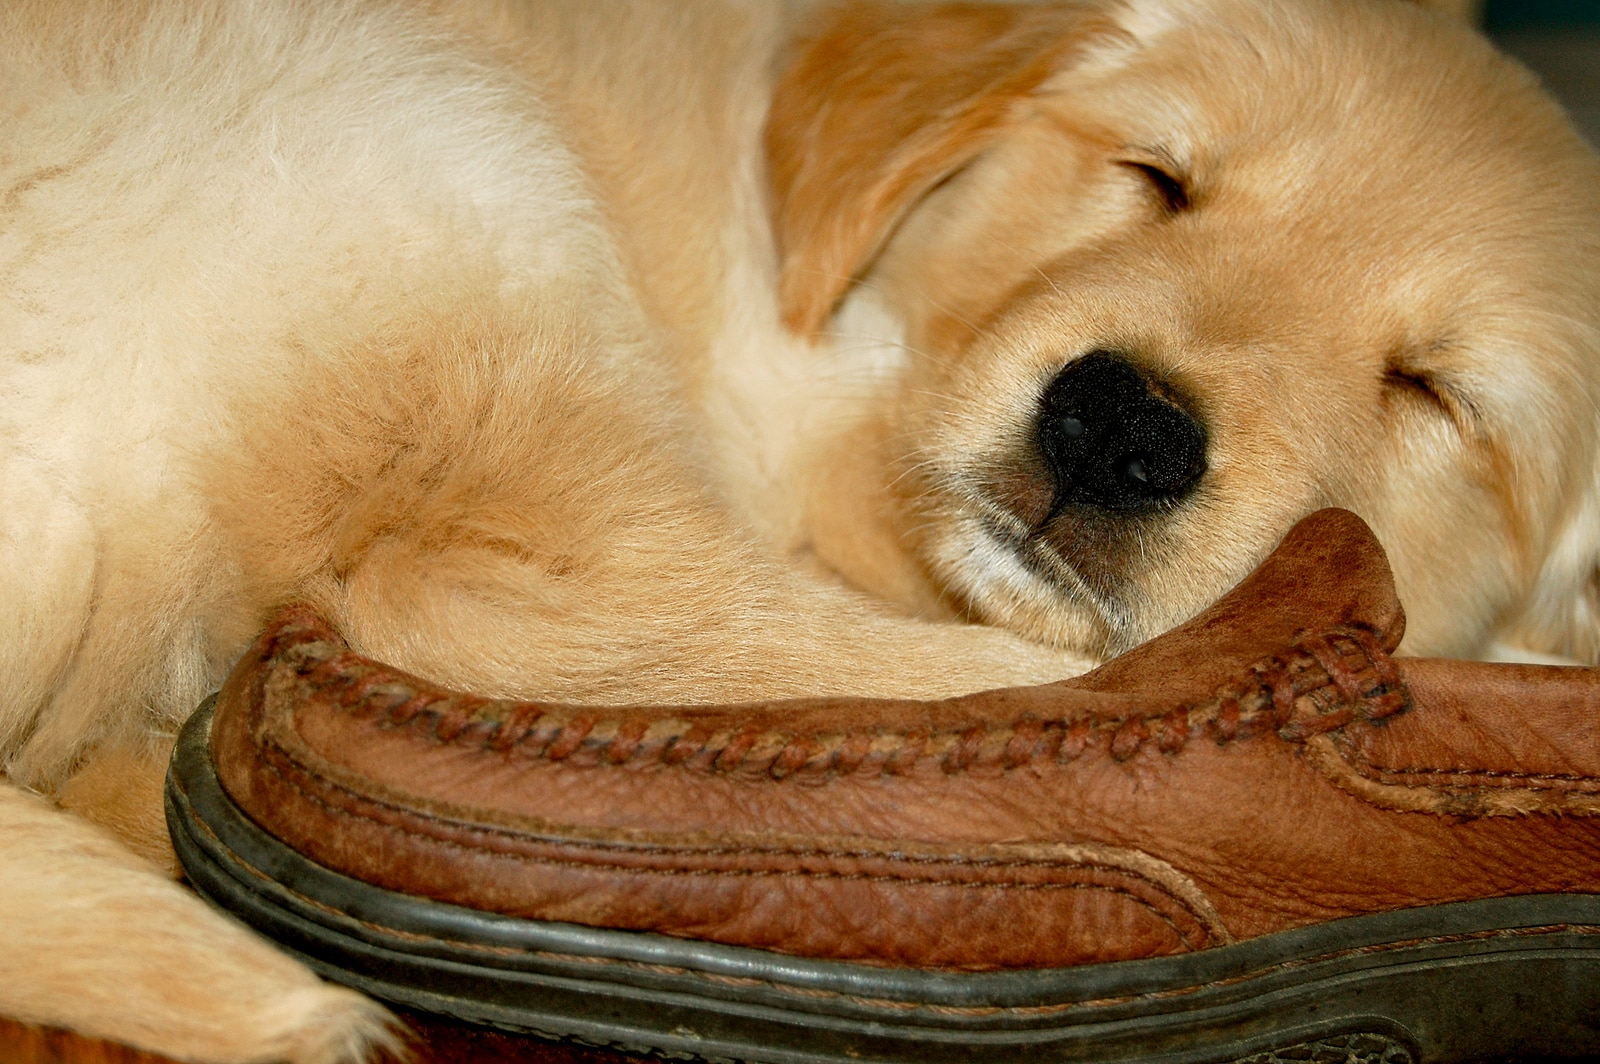 Golden Retriever puppy sleeping on a brown leather loafer.